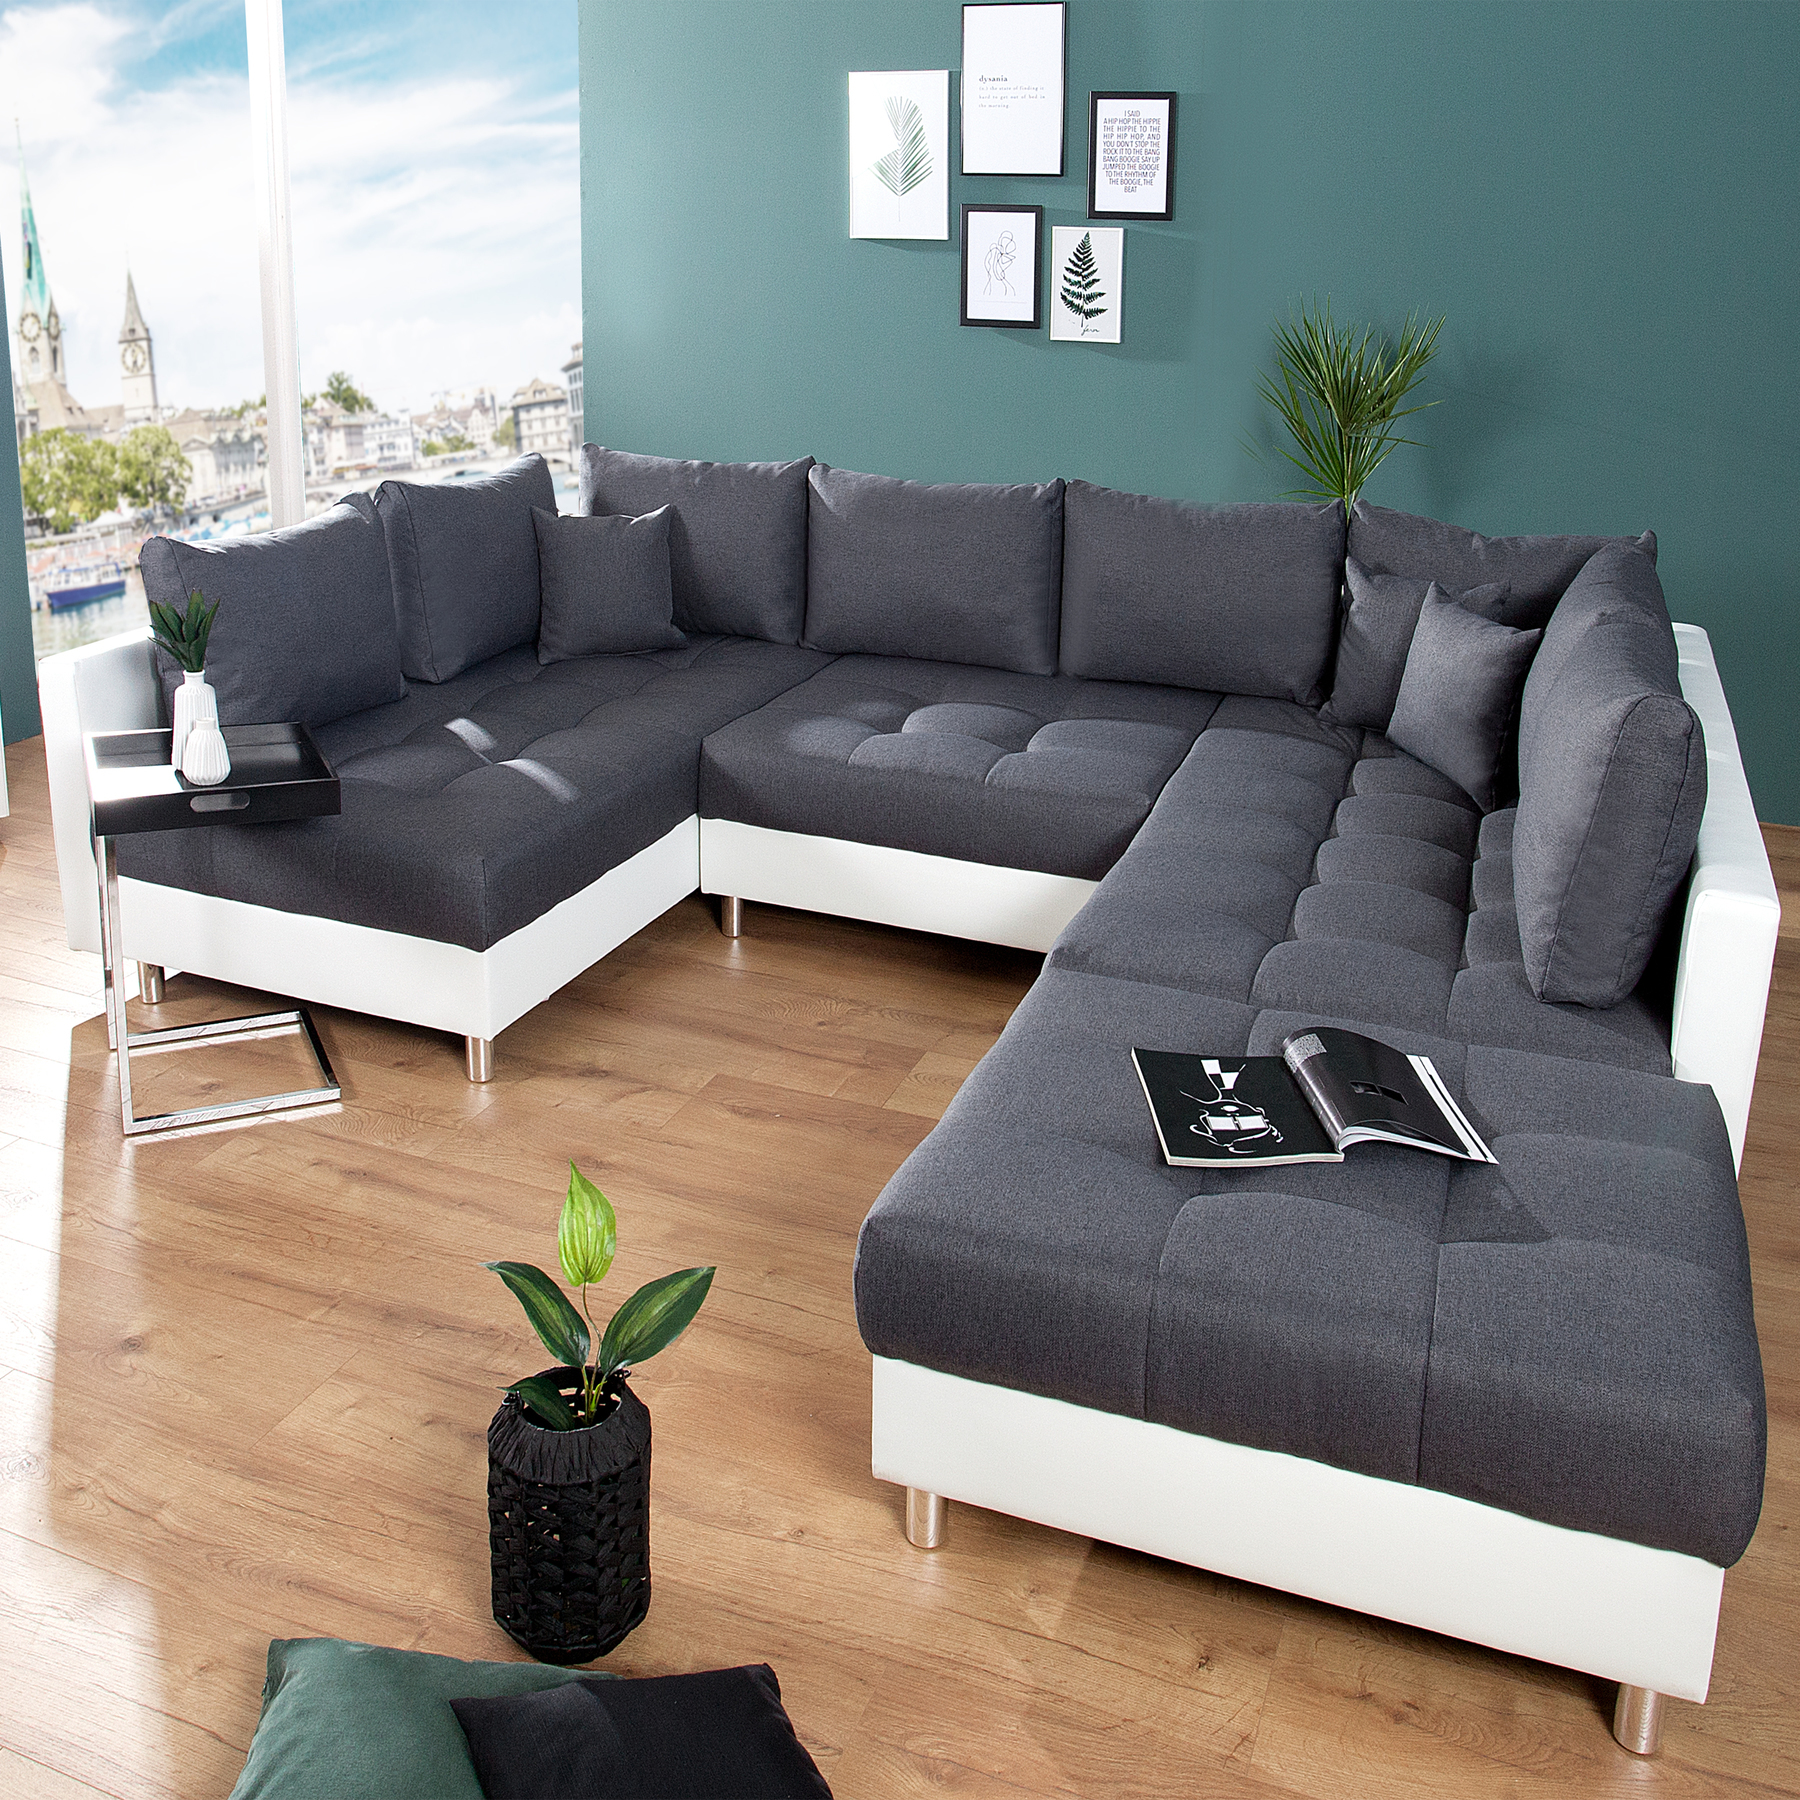 xxl wohnlandschaft kent 305 cm inkl hocker couch sofa wohnlandschaft u sofa ebay. Black Bedroom Furniture Sets. Home Design Ideas